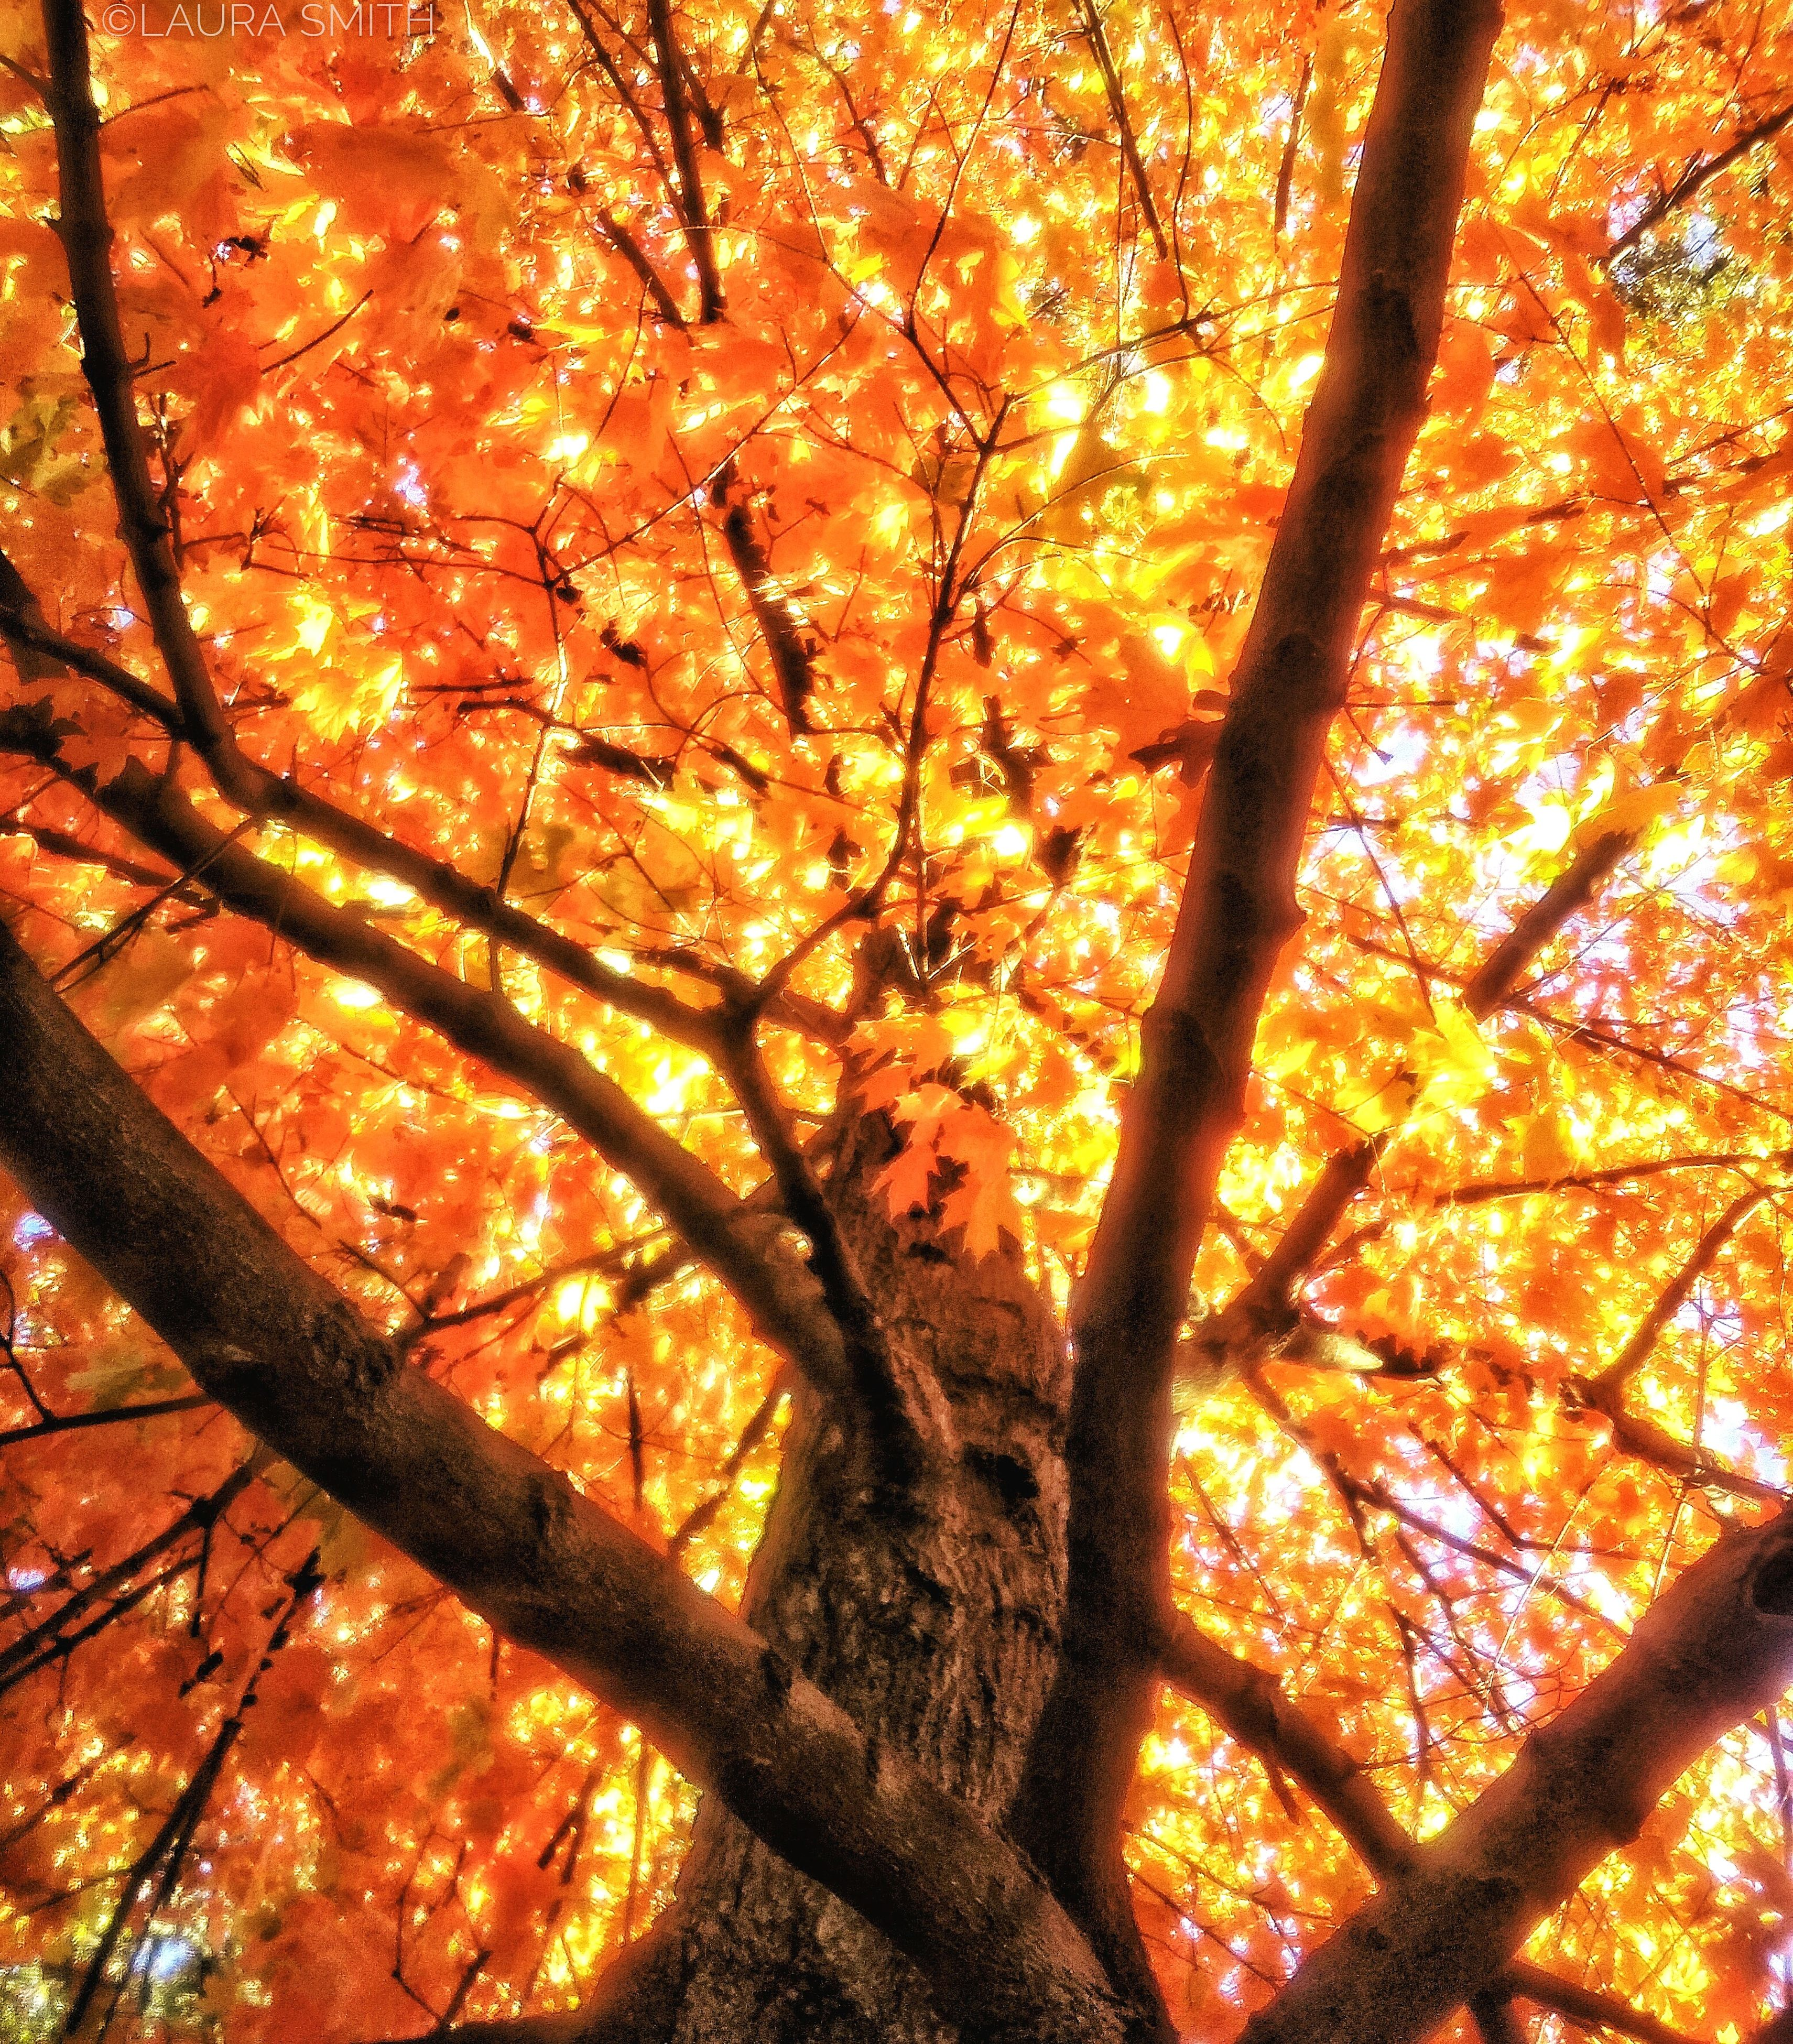 orange color, tree, nature, no people, sunset, beauty in nature, low angle view, outdoors, branch, close-up, backgrounds, day